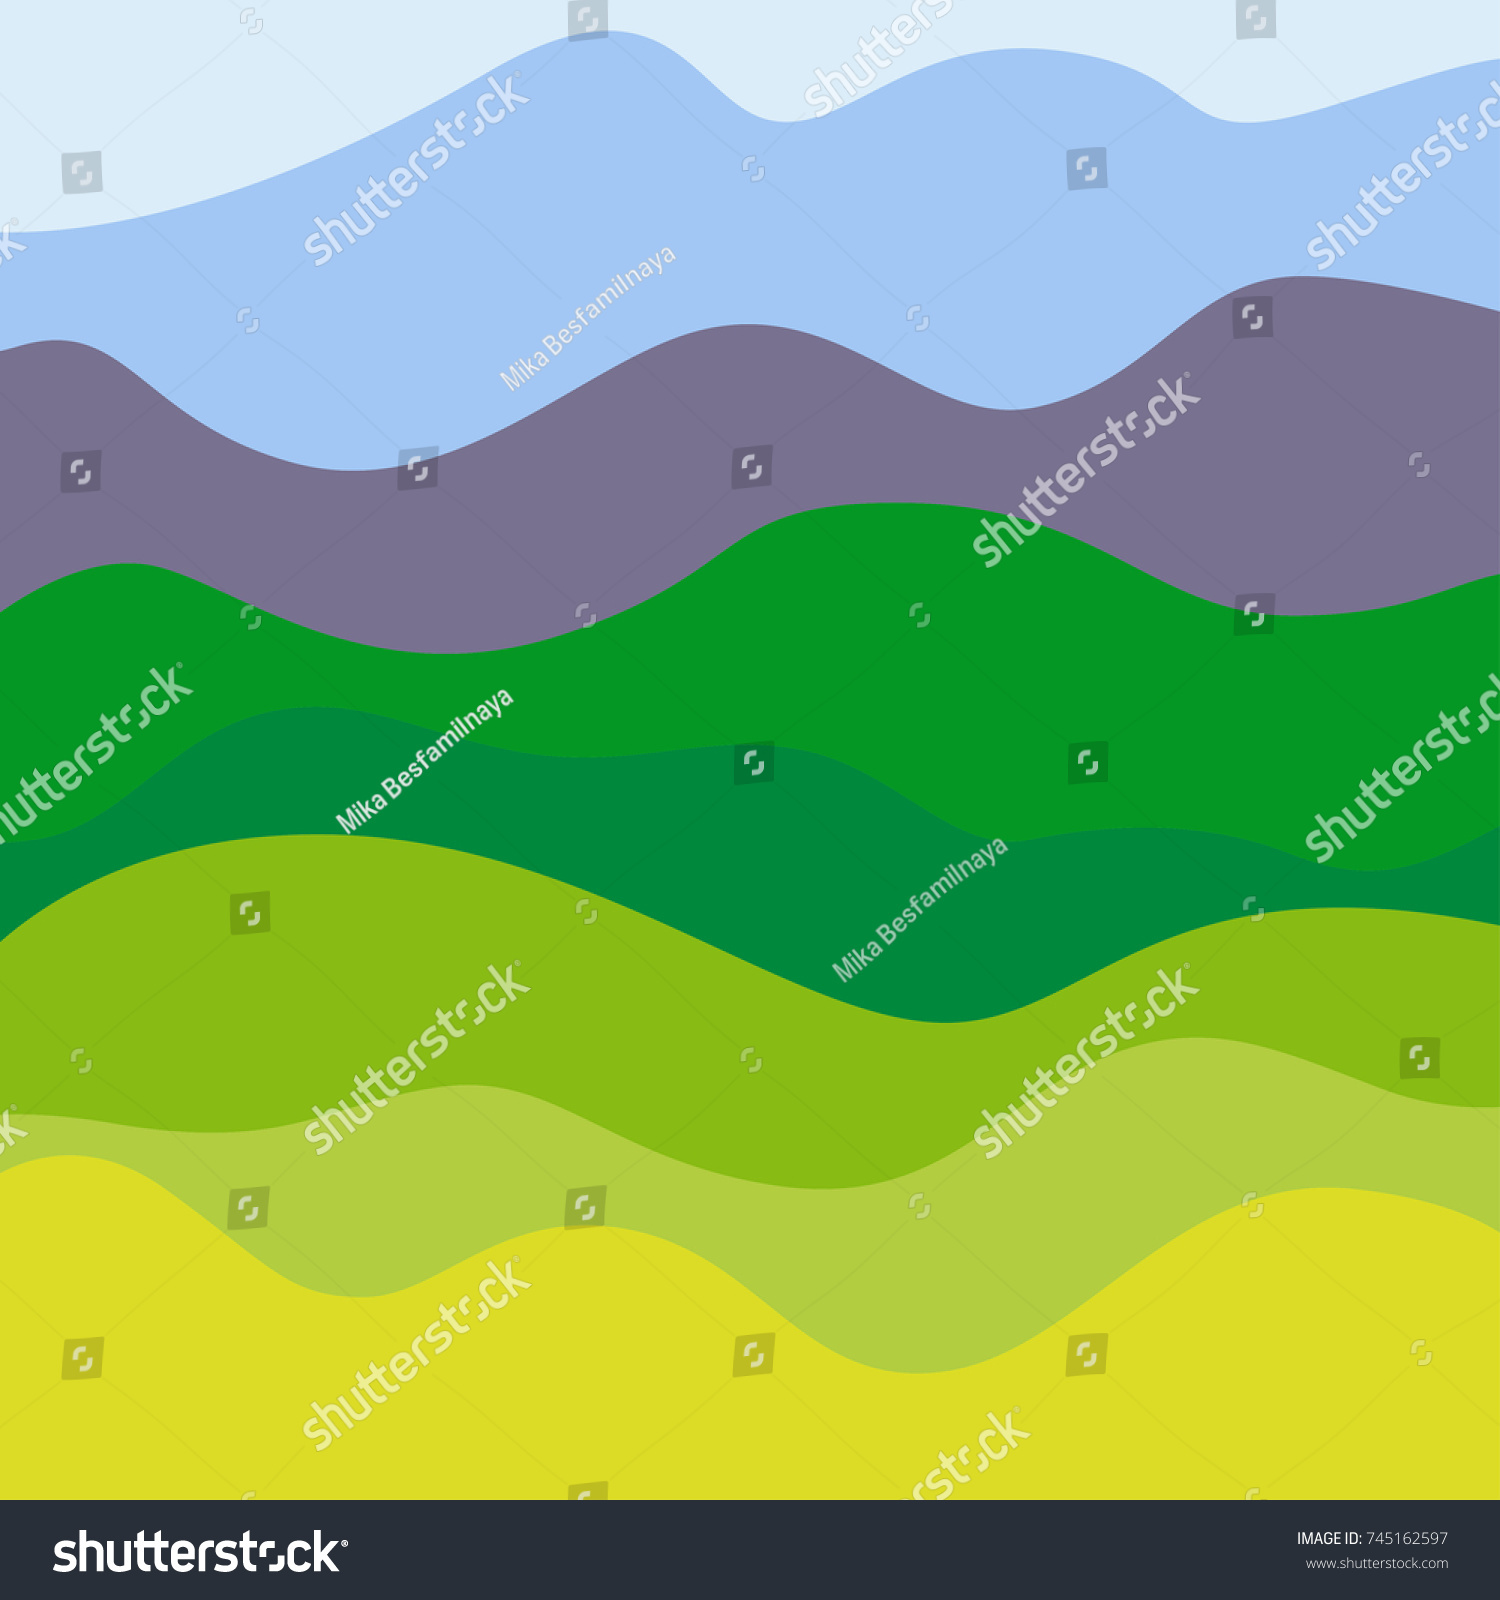 Popular Wallpaper Mountain Pattern - stock-vector-background-landscape-with-trees-and-mountains-pattern-with-waves-multicolored-eco-texture-745162597  Best Photo Reference_273810.jpg